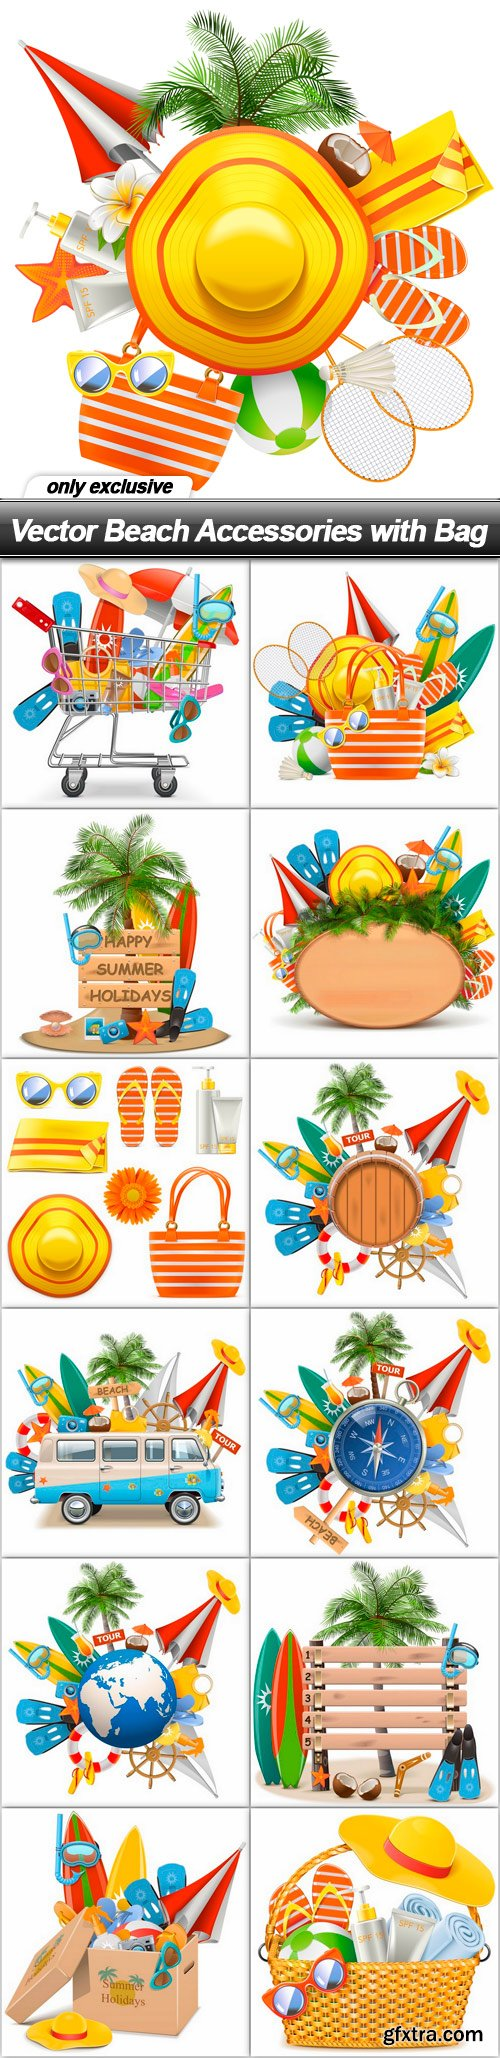 Vector Beach Accessories with Bag - 13 EPS